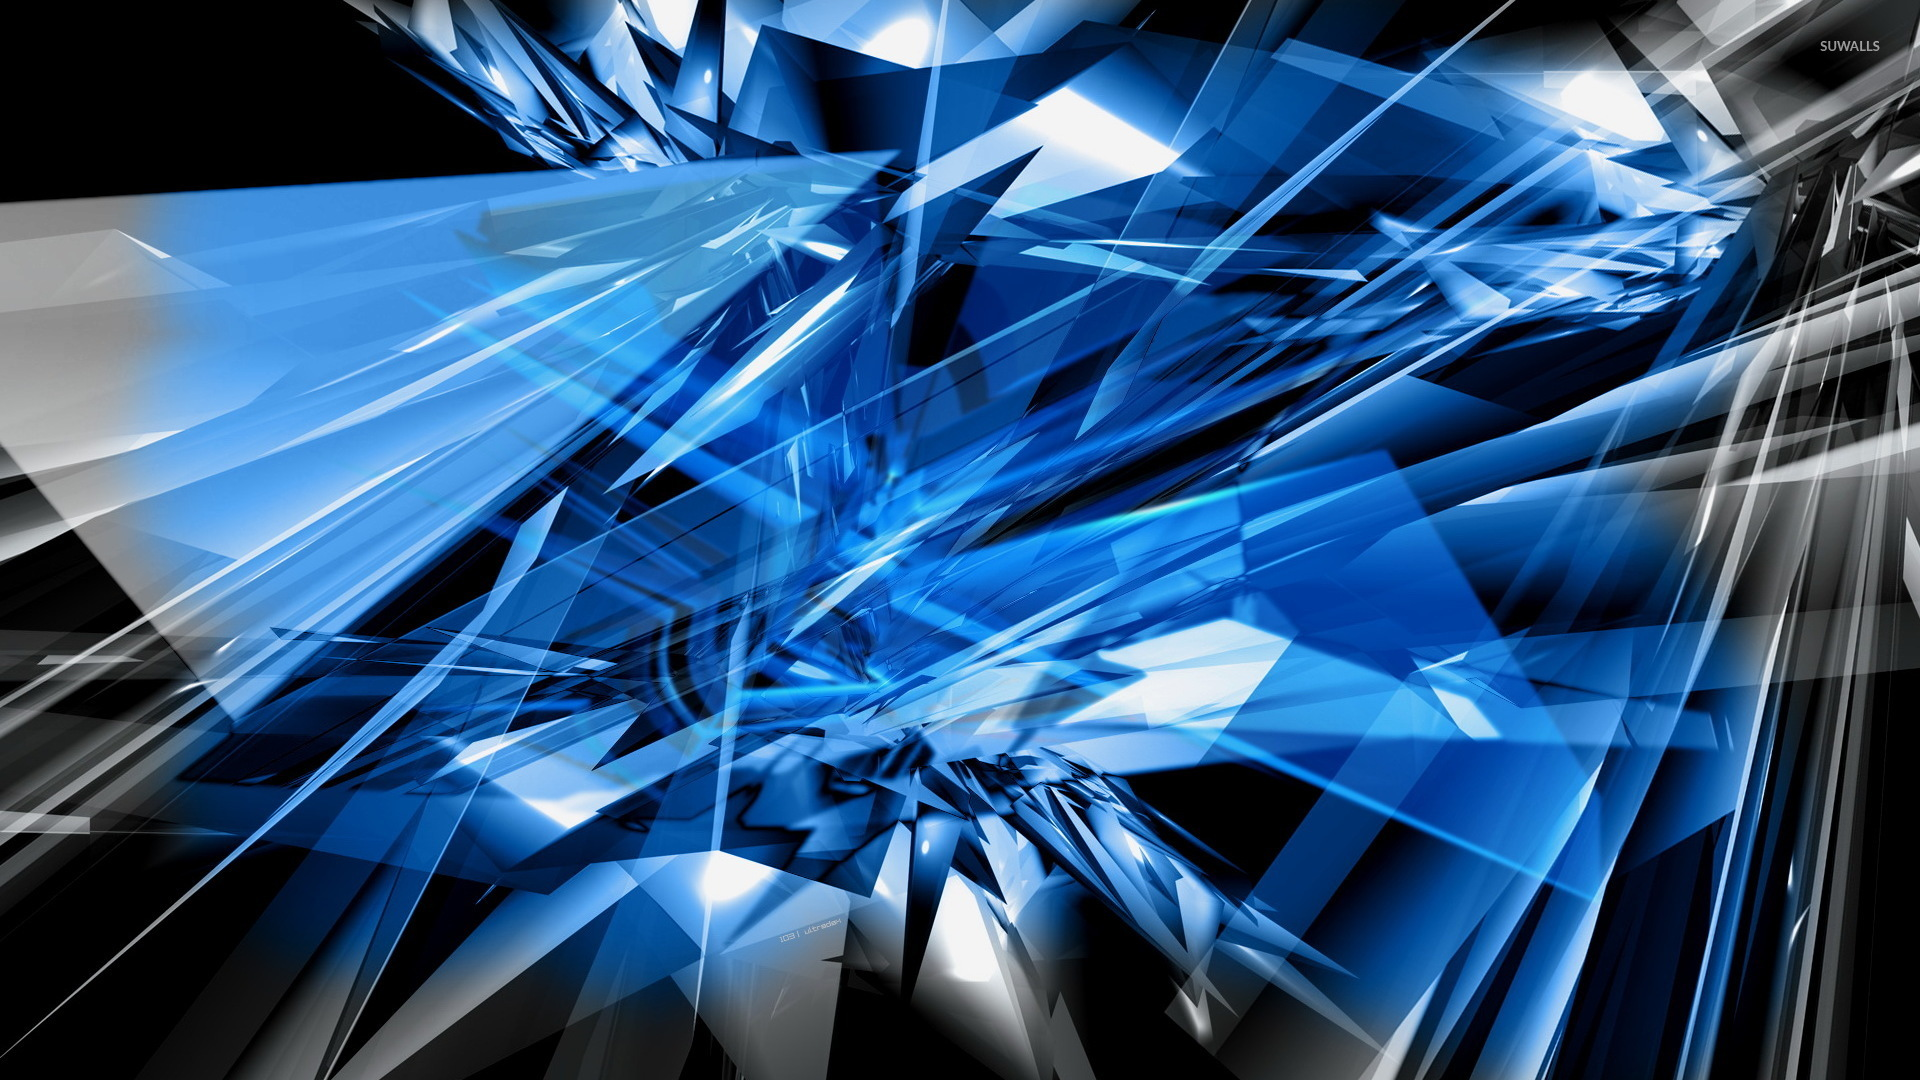 Glass shards wallpaper - Abstract wallpapers - #6883